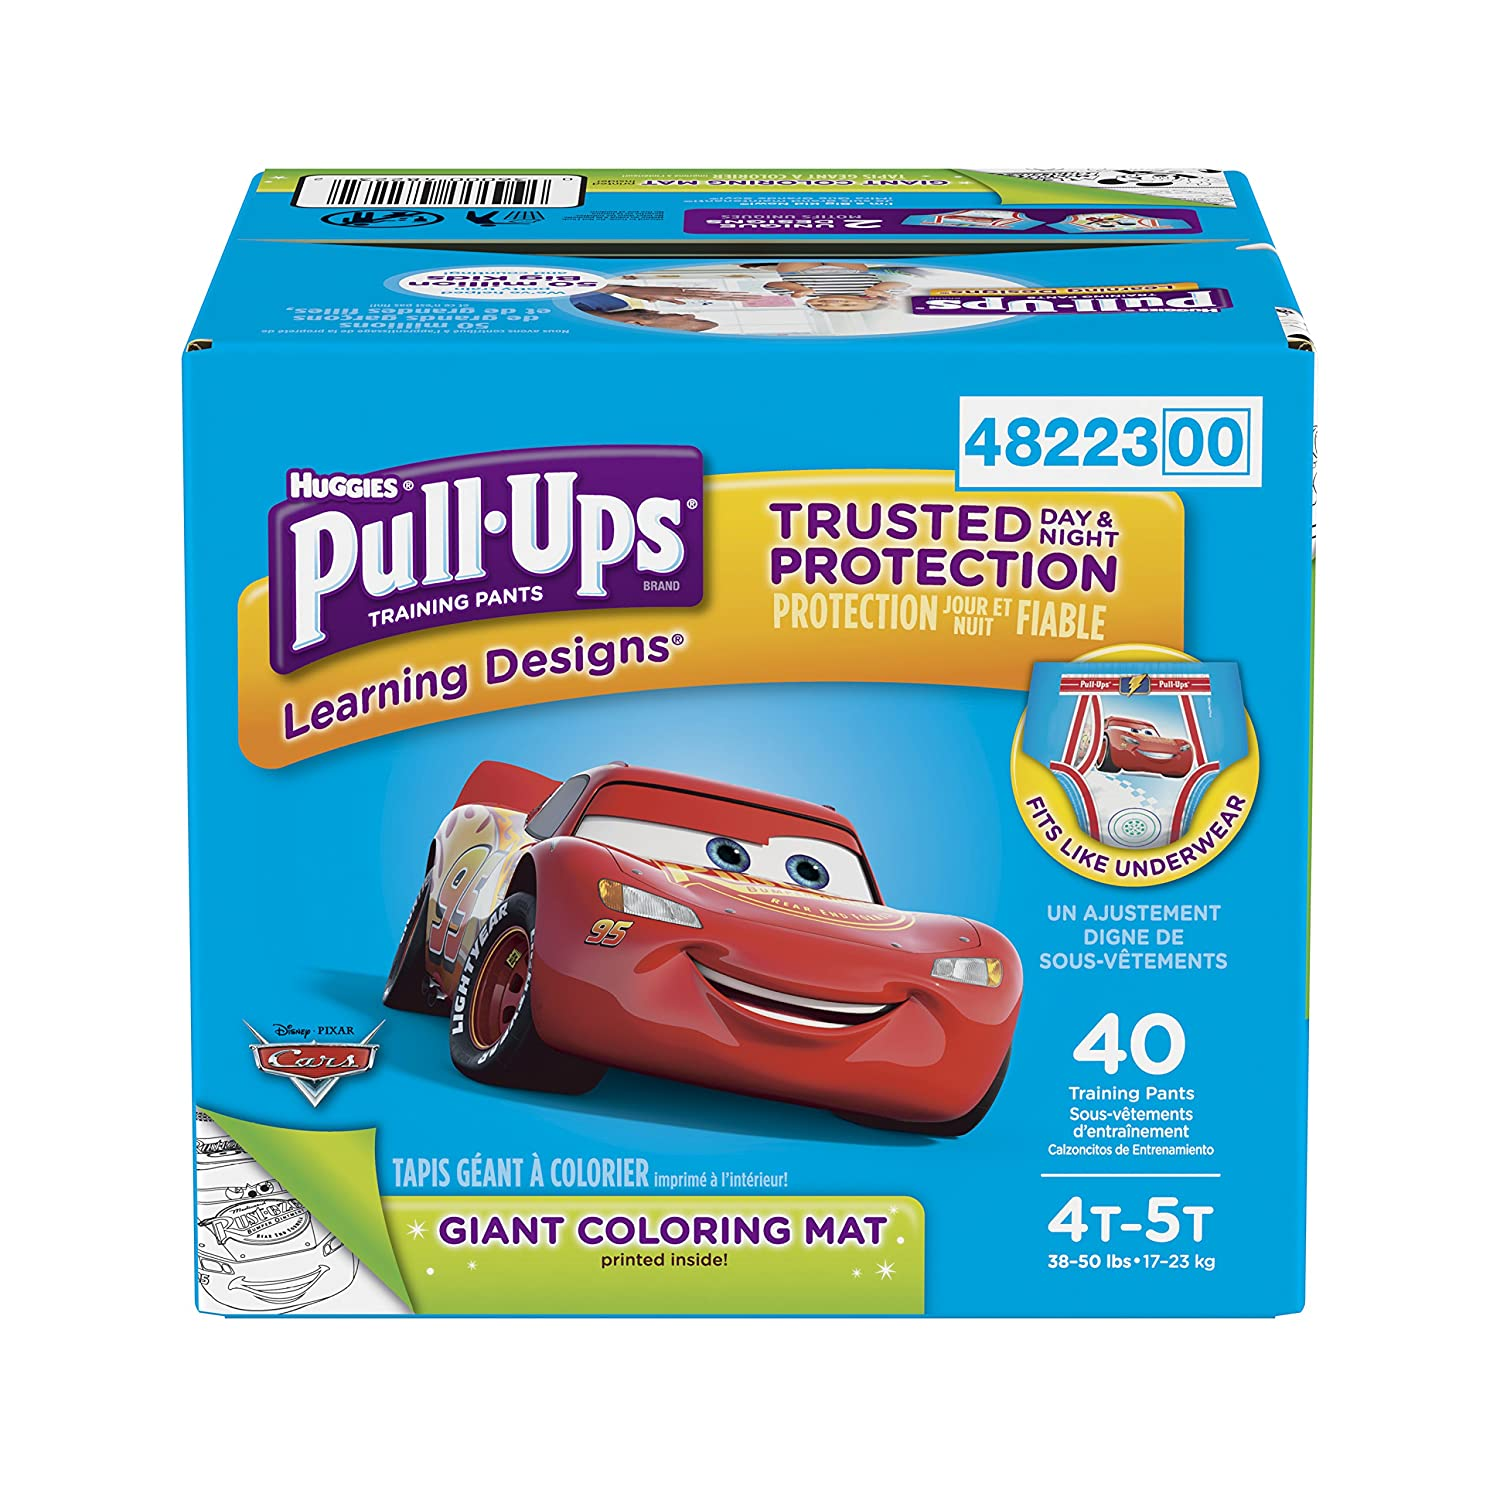 Pull-Ups Learning Designs Potty Training Pants for Boys, 4T-5T (38-50 lb.), 40 Ct. (Packaging May Vary) Kimberly-Clark Corp. 10036000482239